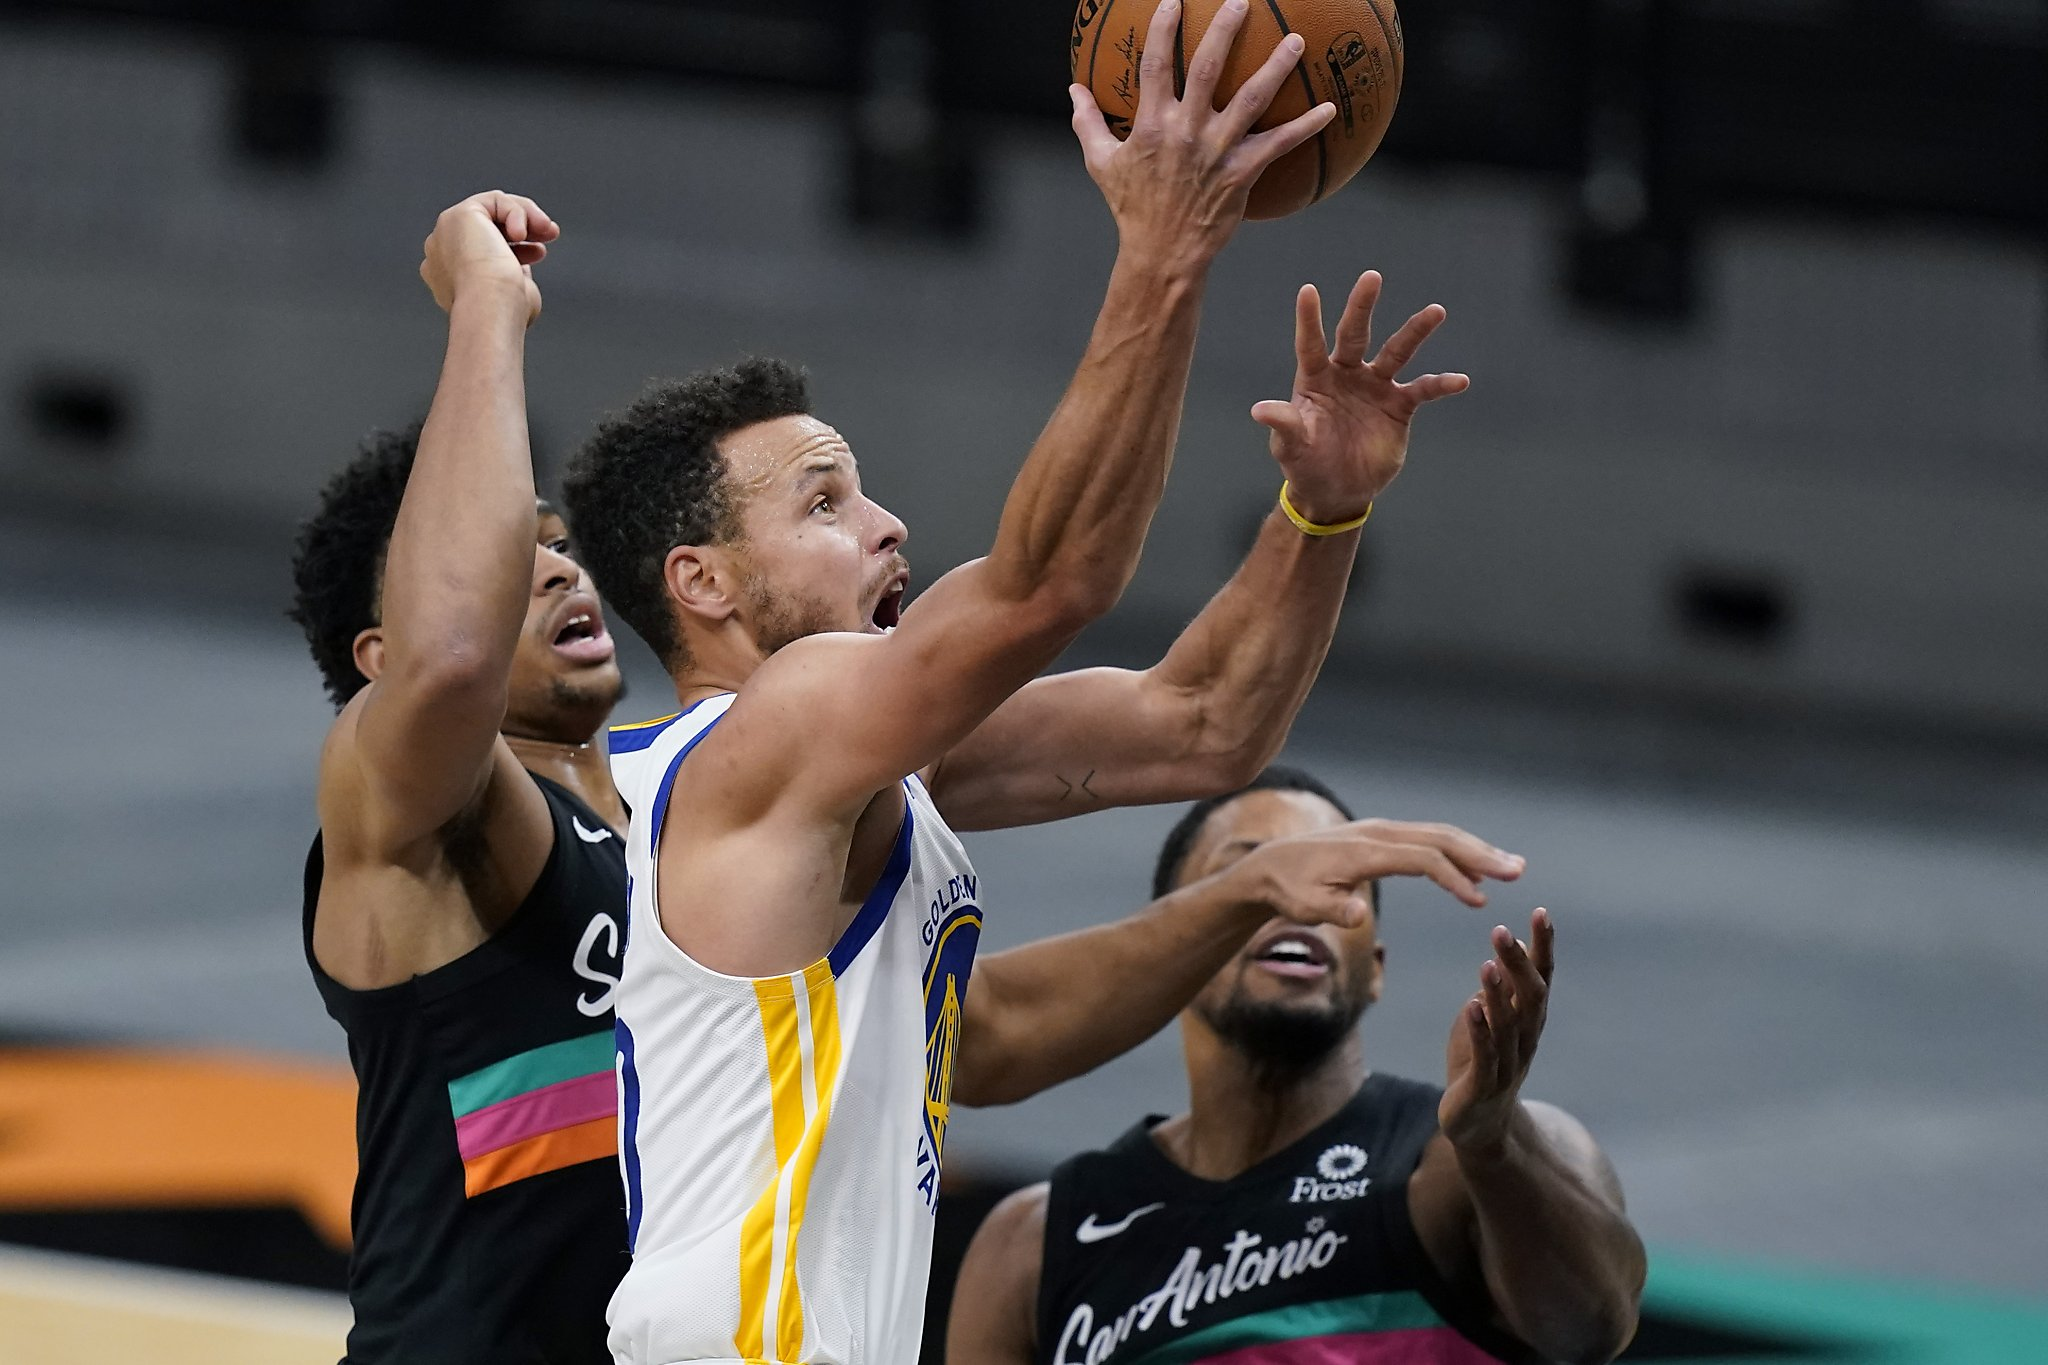 Steph Curry scores 32, powers Warriors to bounce-back win over Spurs - San Francisco Chronicle